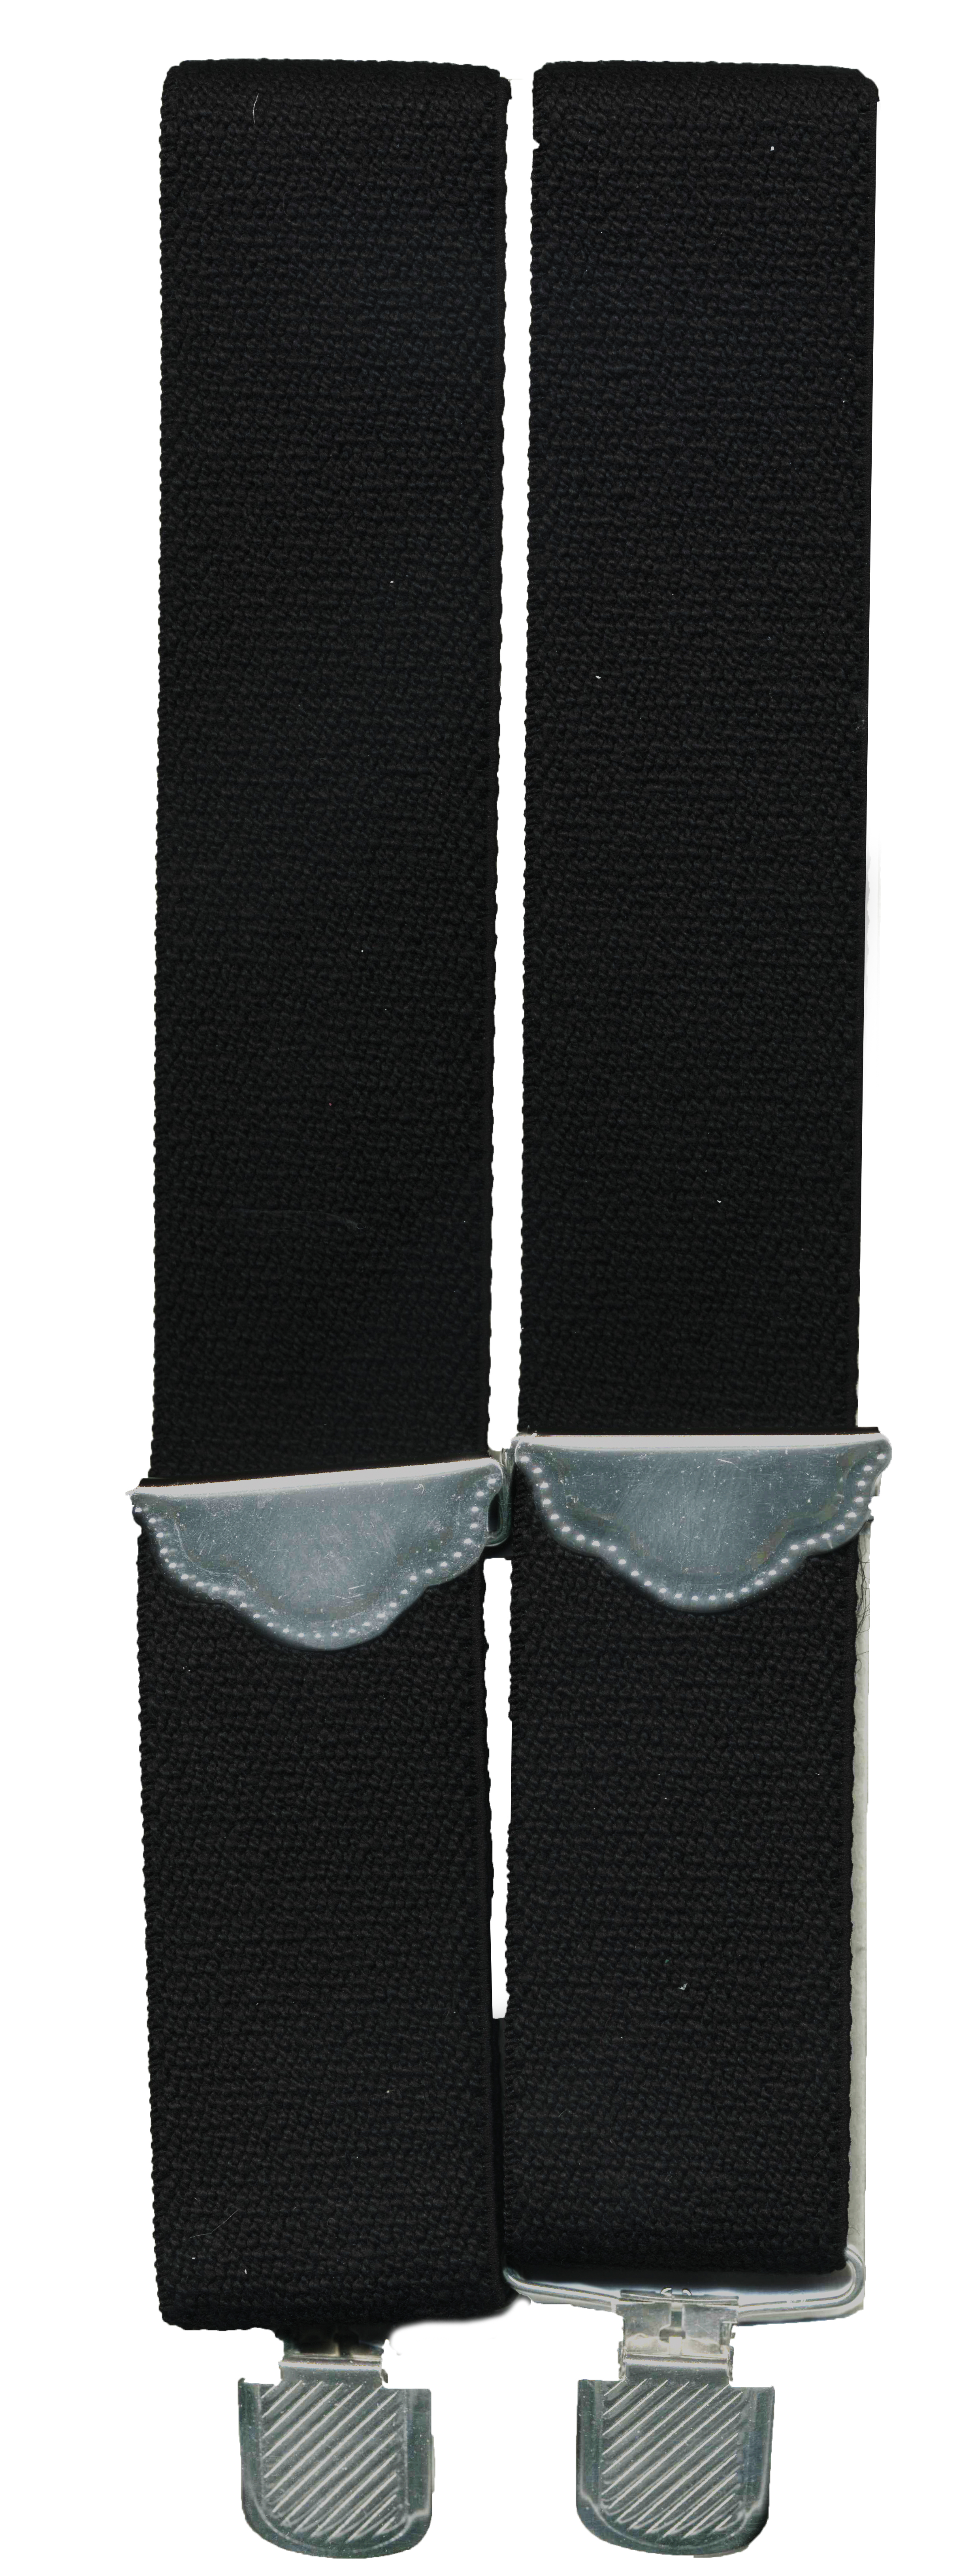 Featured Image for 1890s Suspenders